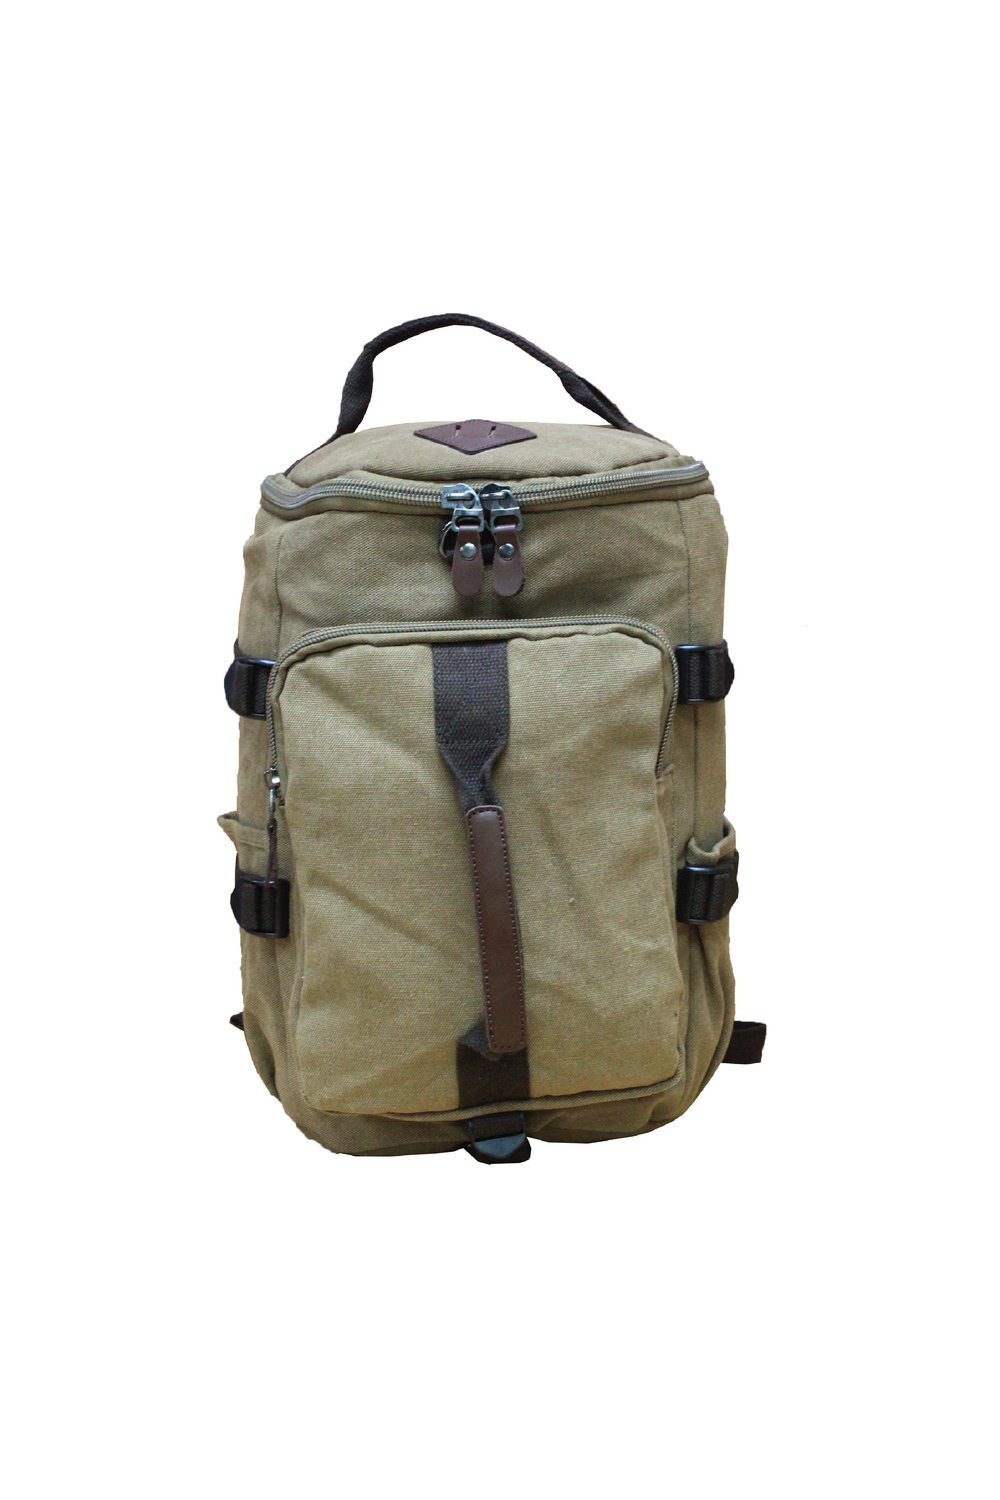 67aa8ce5e Canvas Two Ways Bag (Duffle/Backpack) - TCT1928 — T Poly Ventures